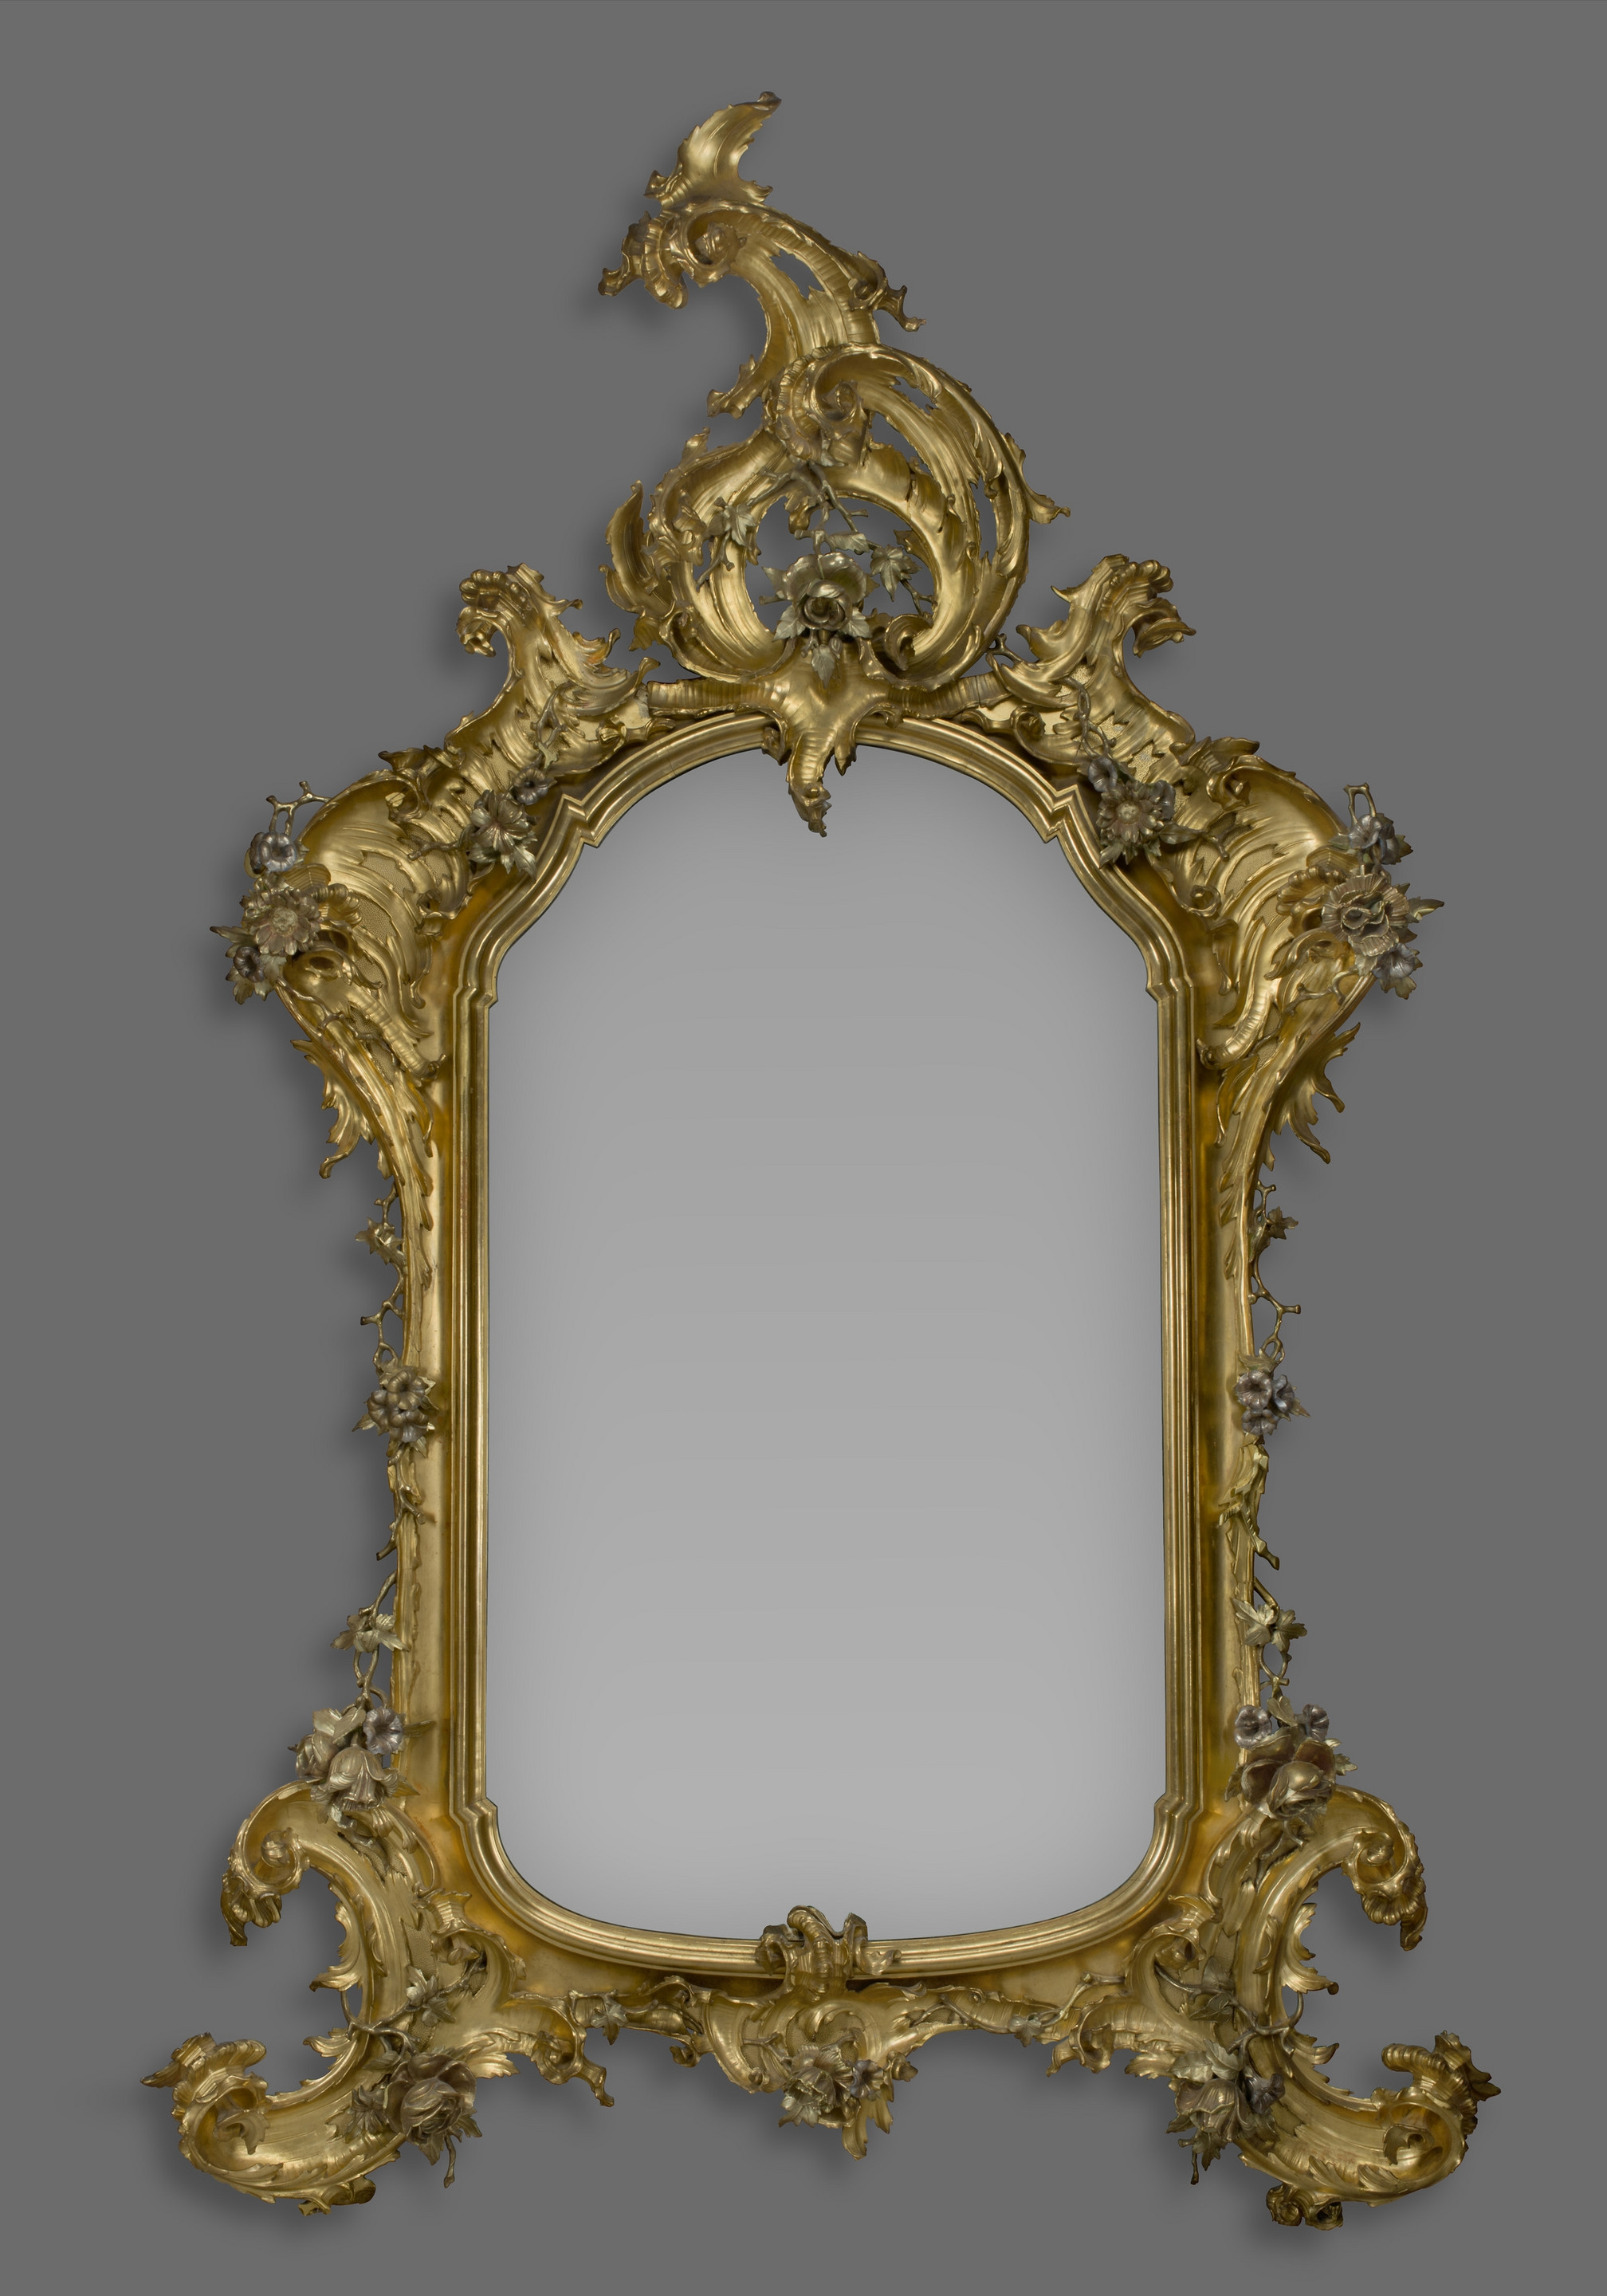 Antique Silver Mirrors The Uks Premier Antiques Portal Online Pertaining To Gilt Mirrors For Sale (Image 4 of 15)